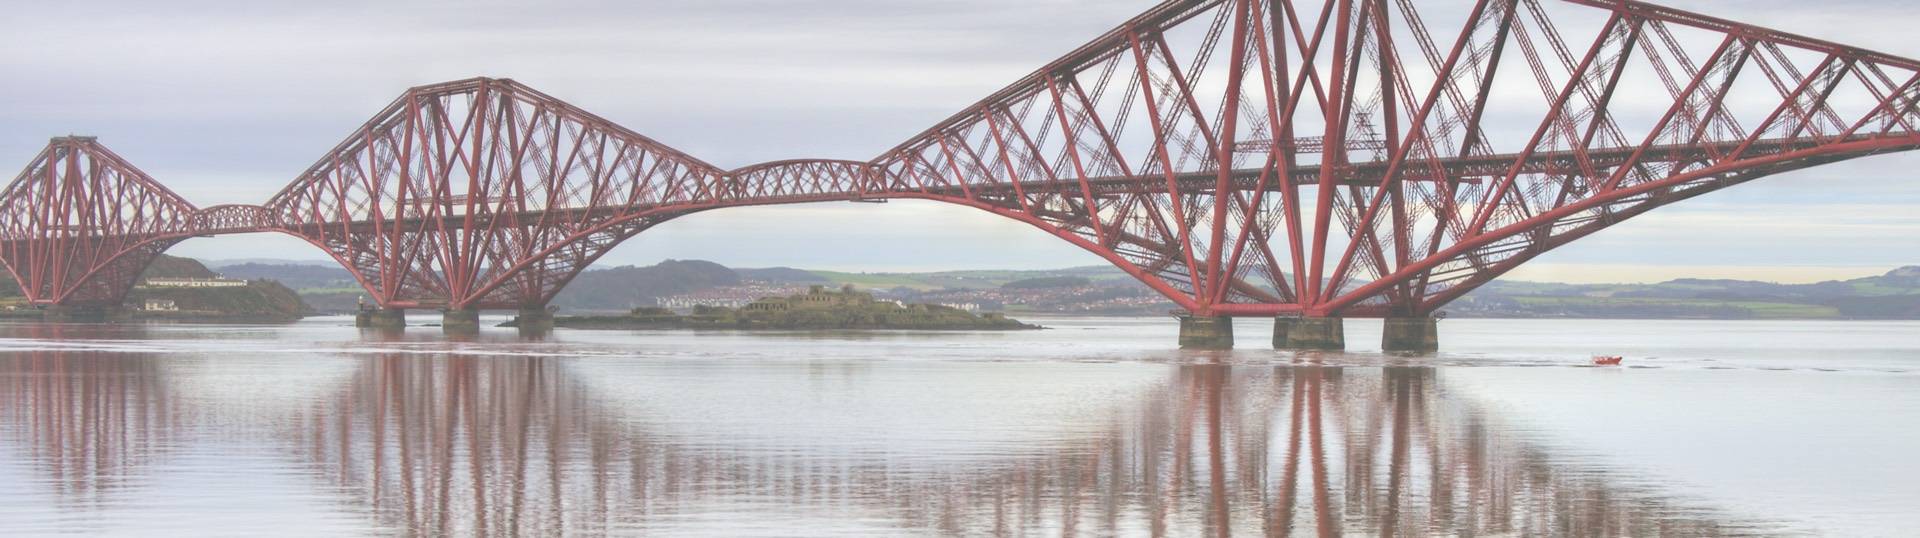 Forth Rail Bridge, South Queensferry